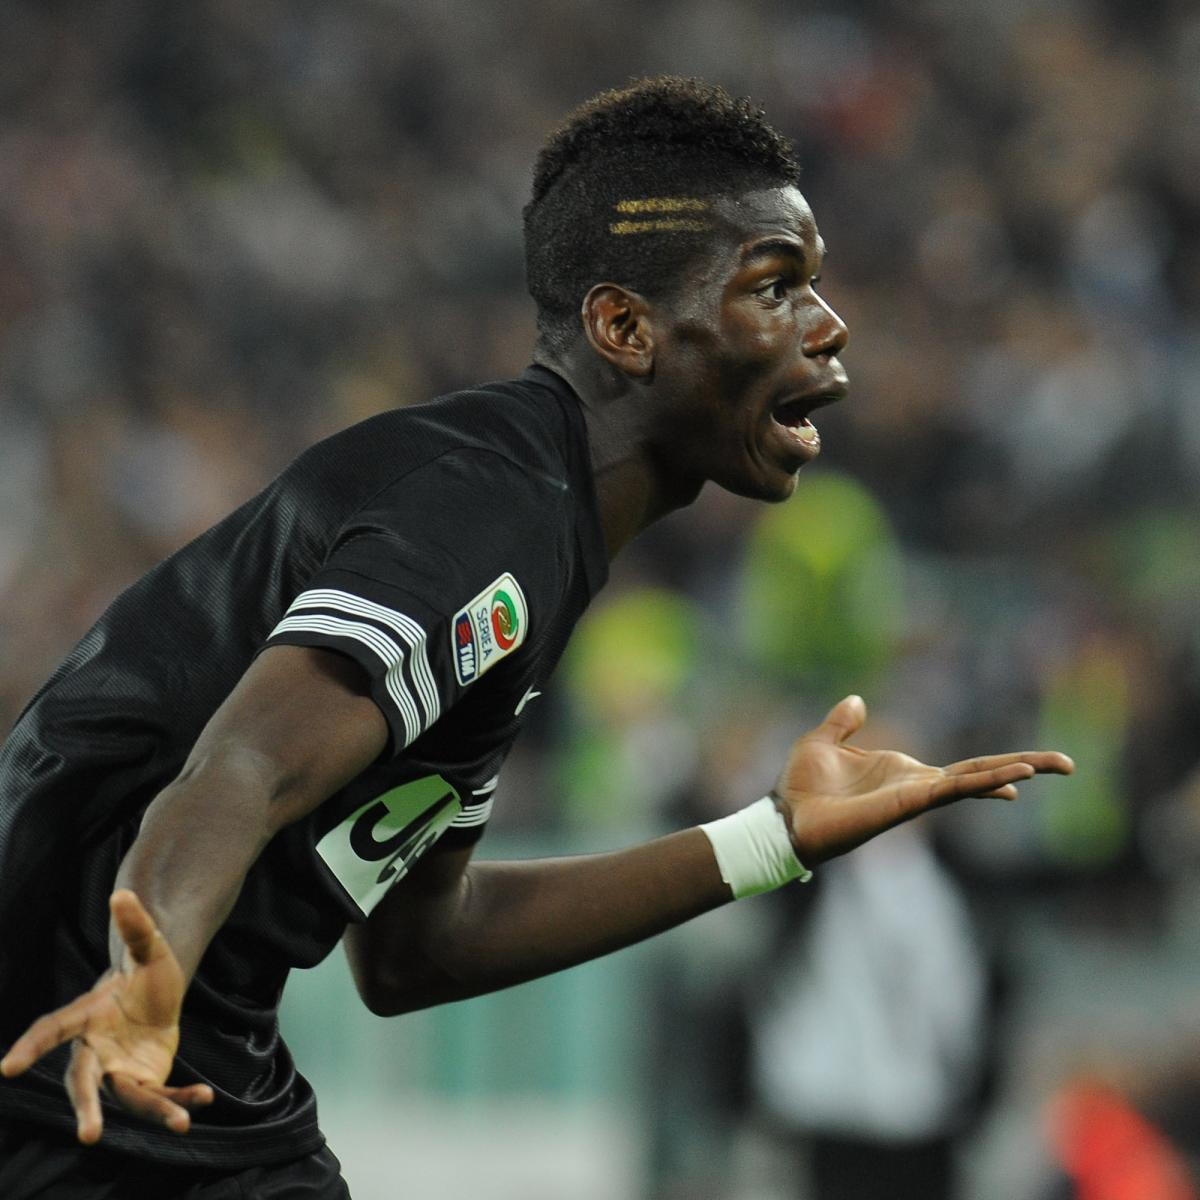 Paul pogba s early performances for juventus show promise